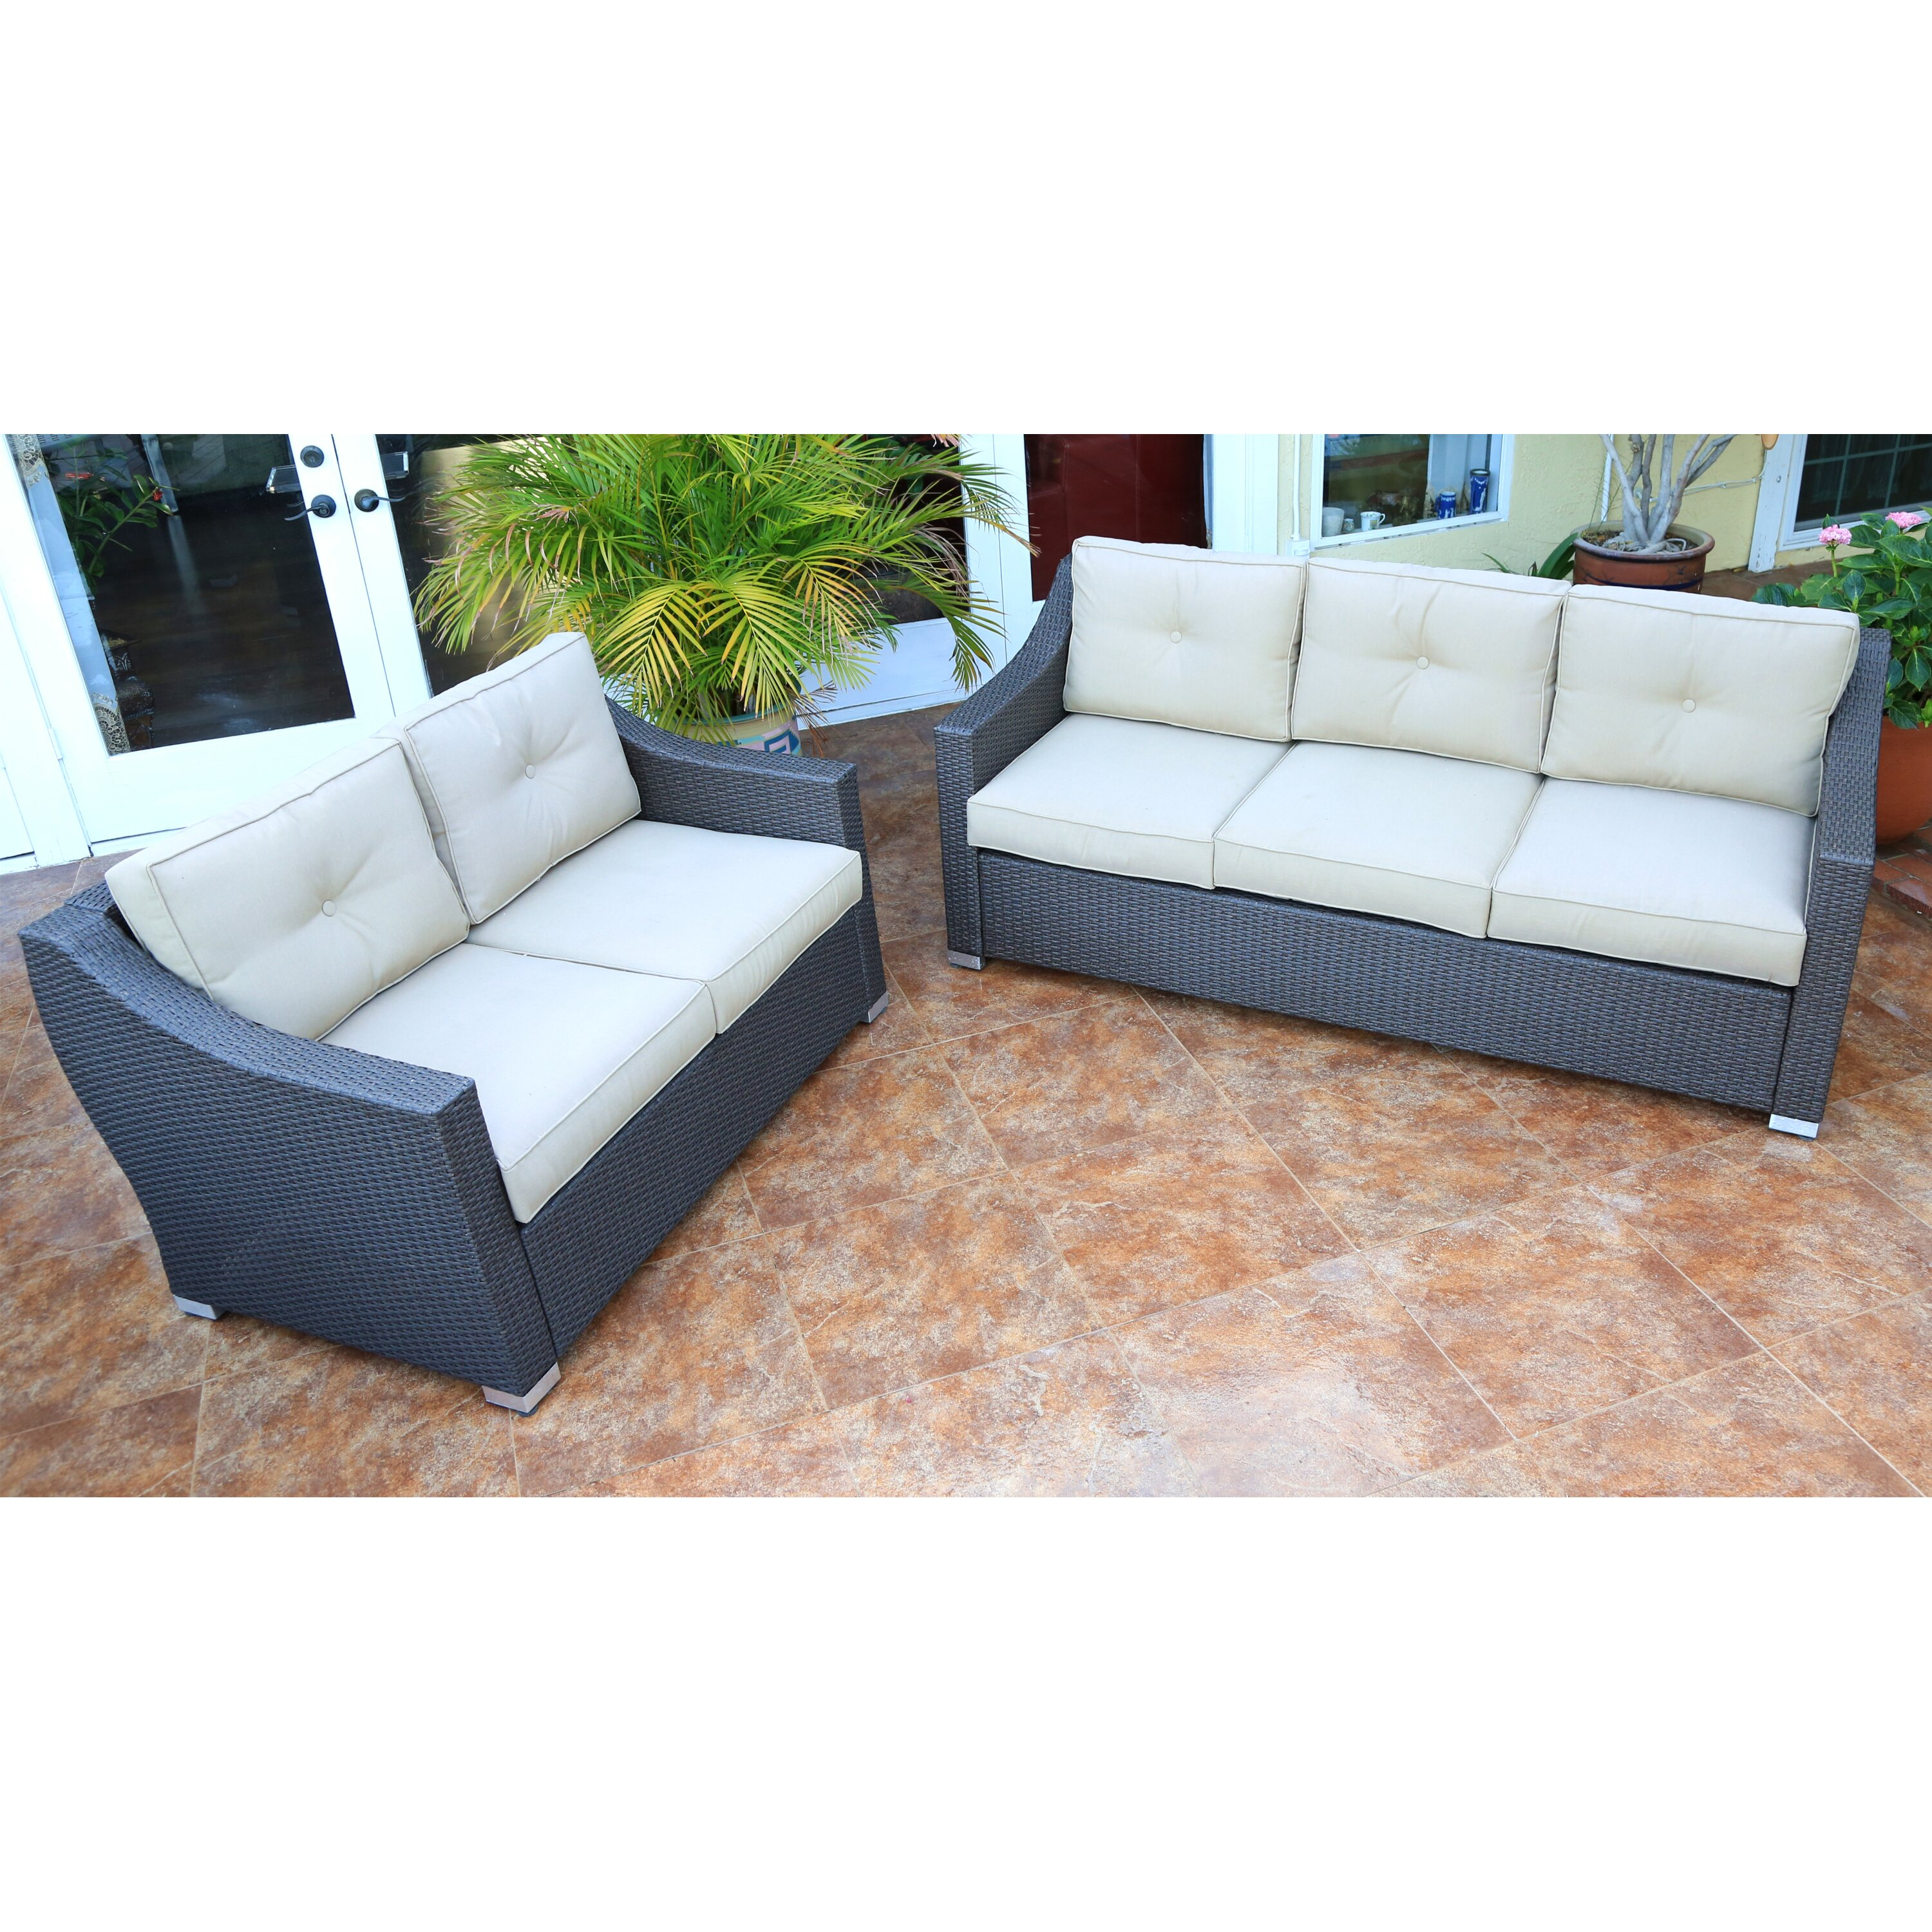 Tampa 2 Piece Patio Sofa Group with Cushion DS JJWK